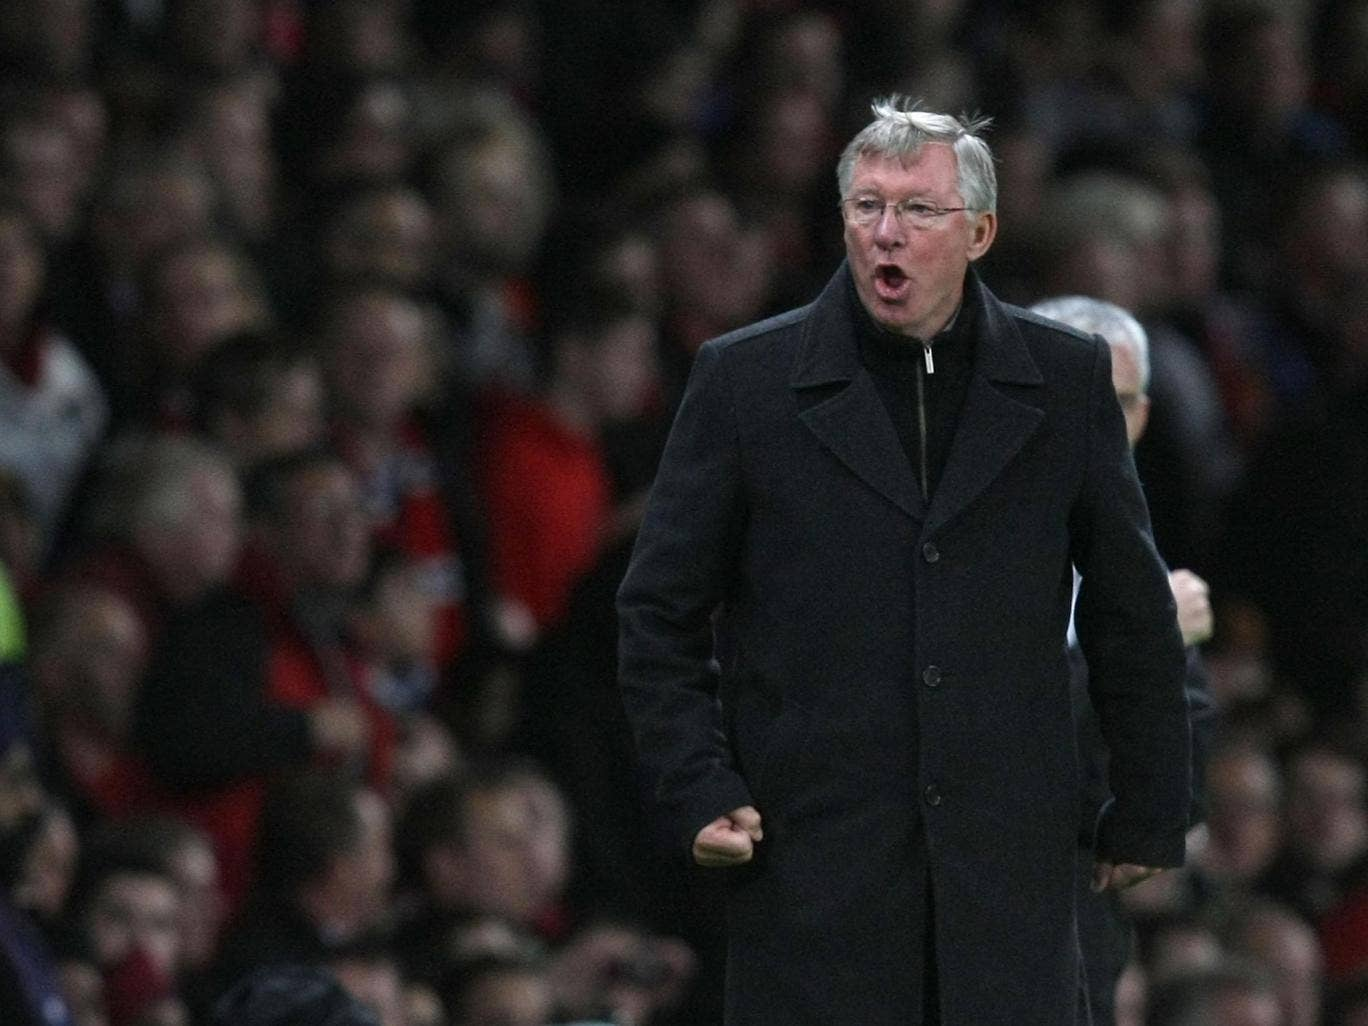 Sir Alex Ferguson of Manchester United complains to the assistant referee during the Barclays Premier League match between Manchester United and Newcastle United